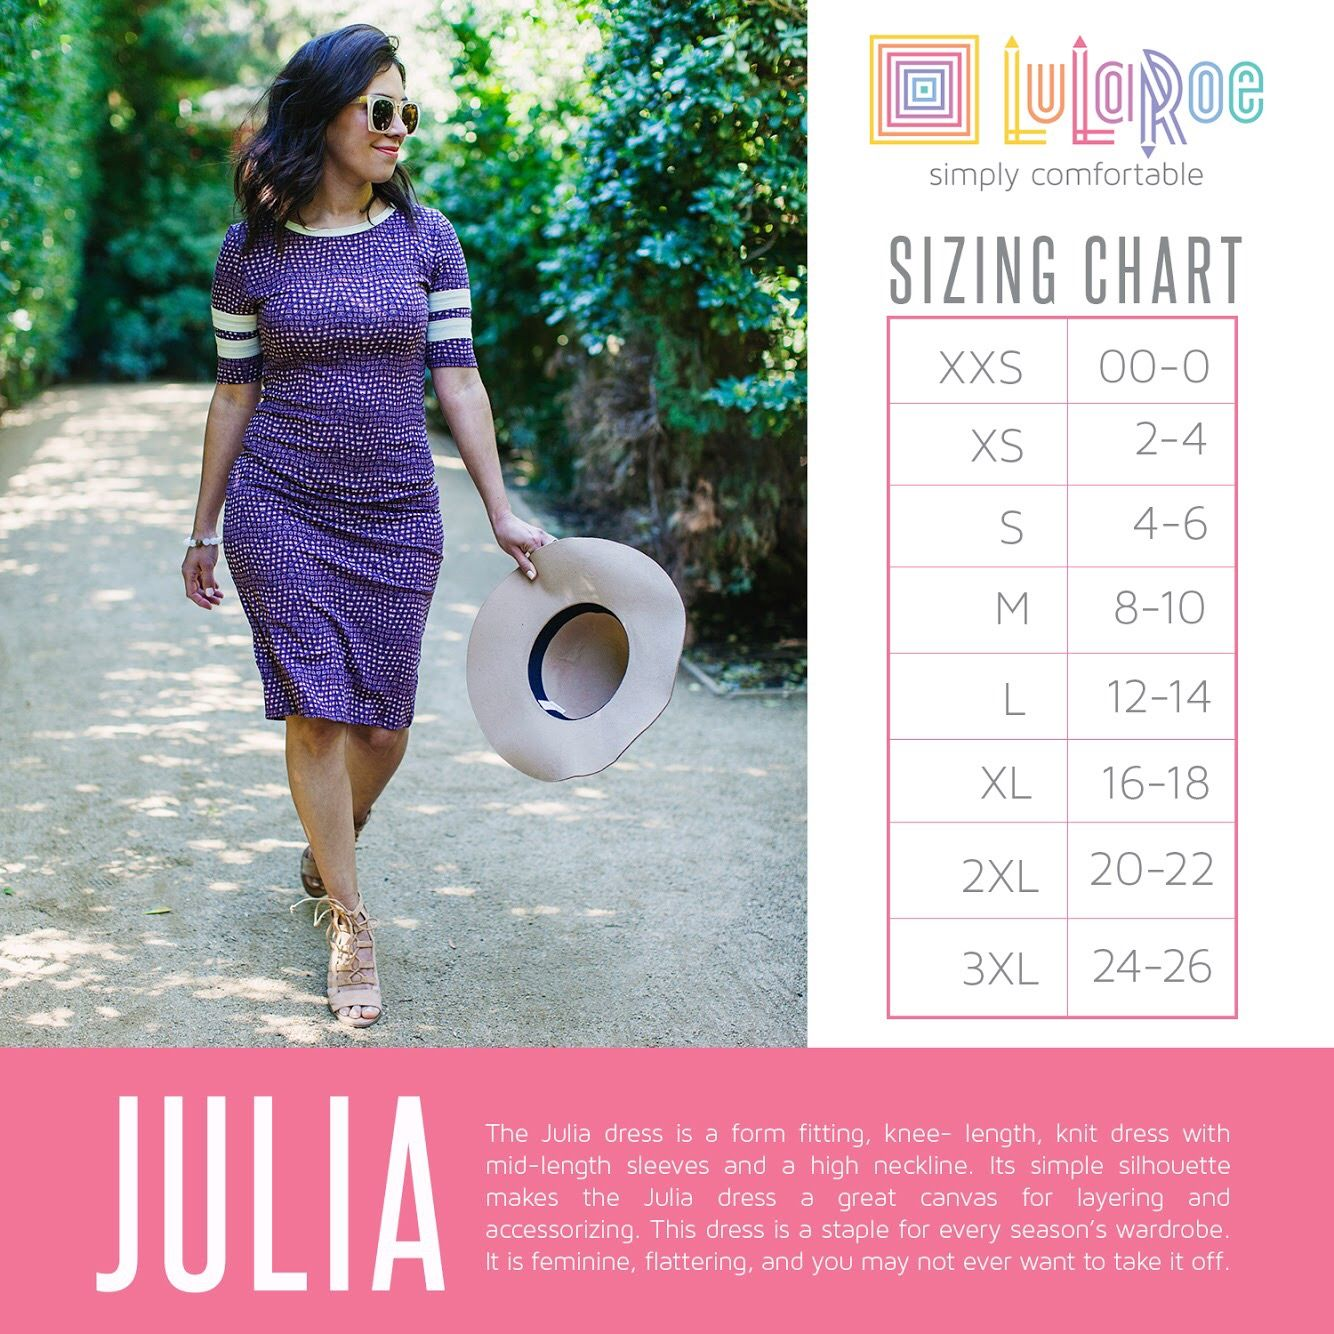 346da0fcf75 LuLaRoe Julia Dress Size Chart. See our current collection here -  www.facebook.com groups LuLaRoeGilbertGirls